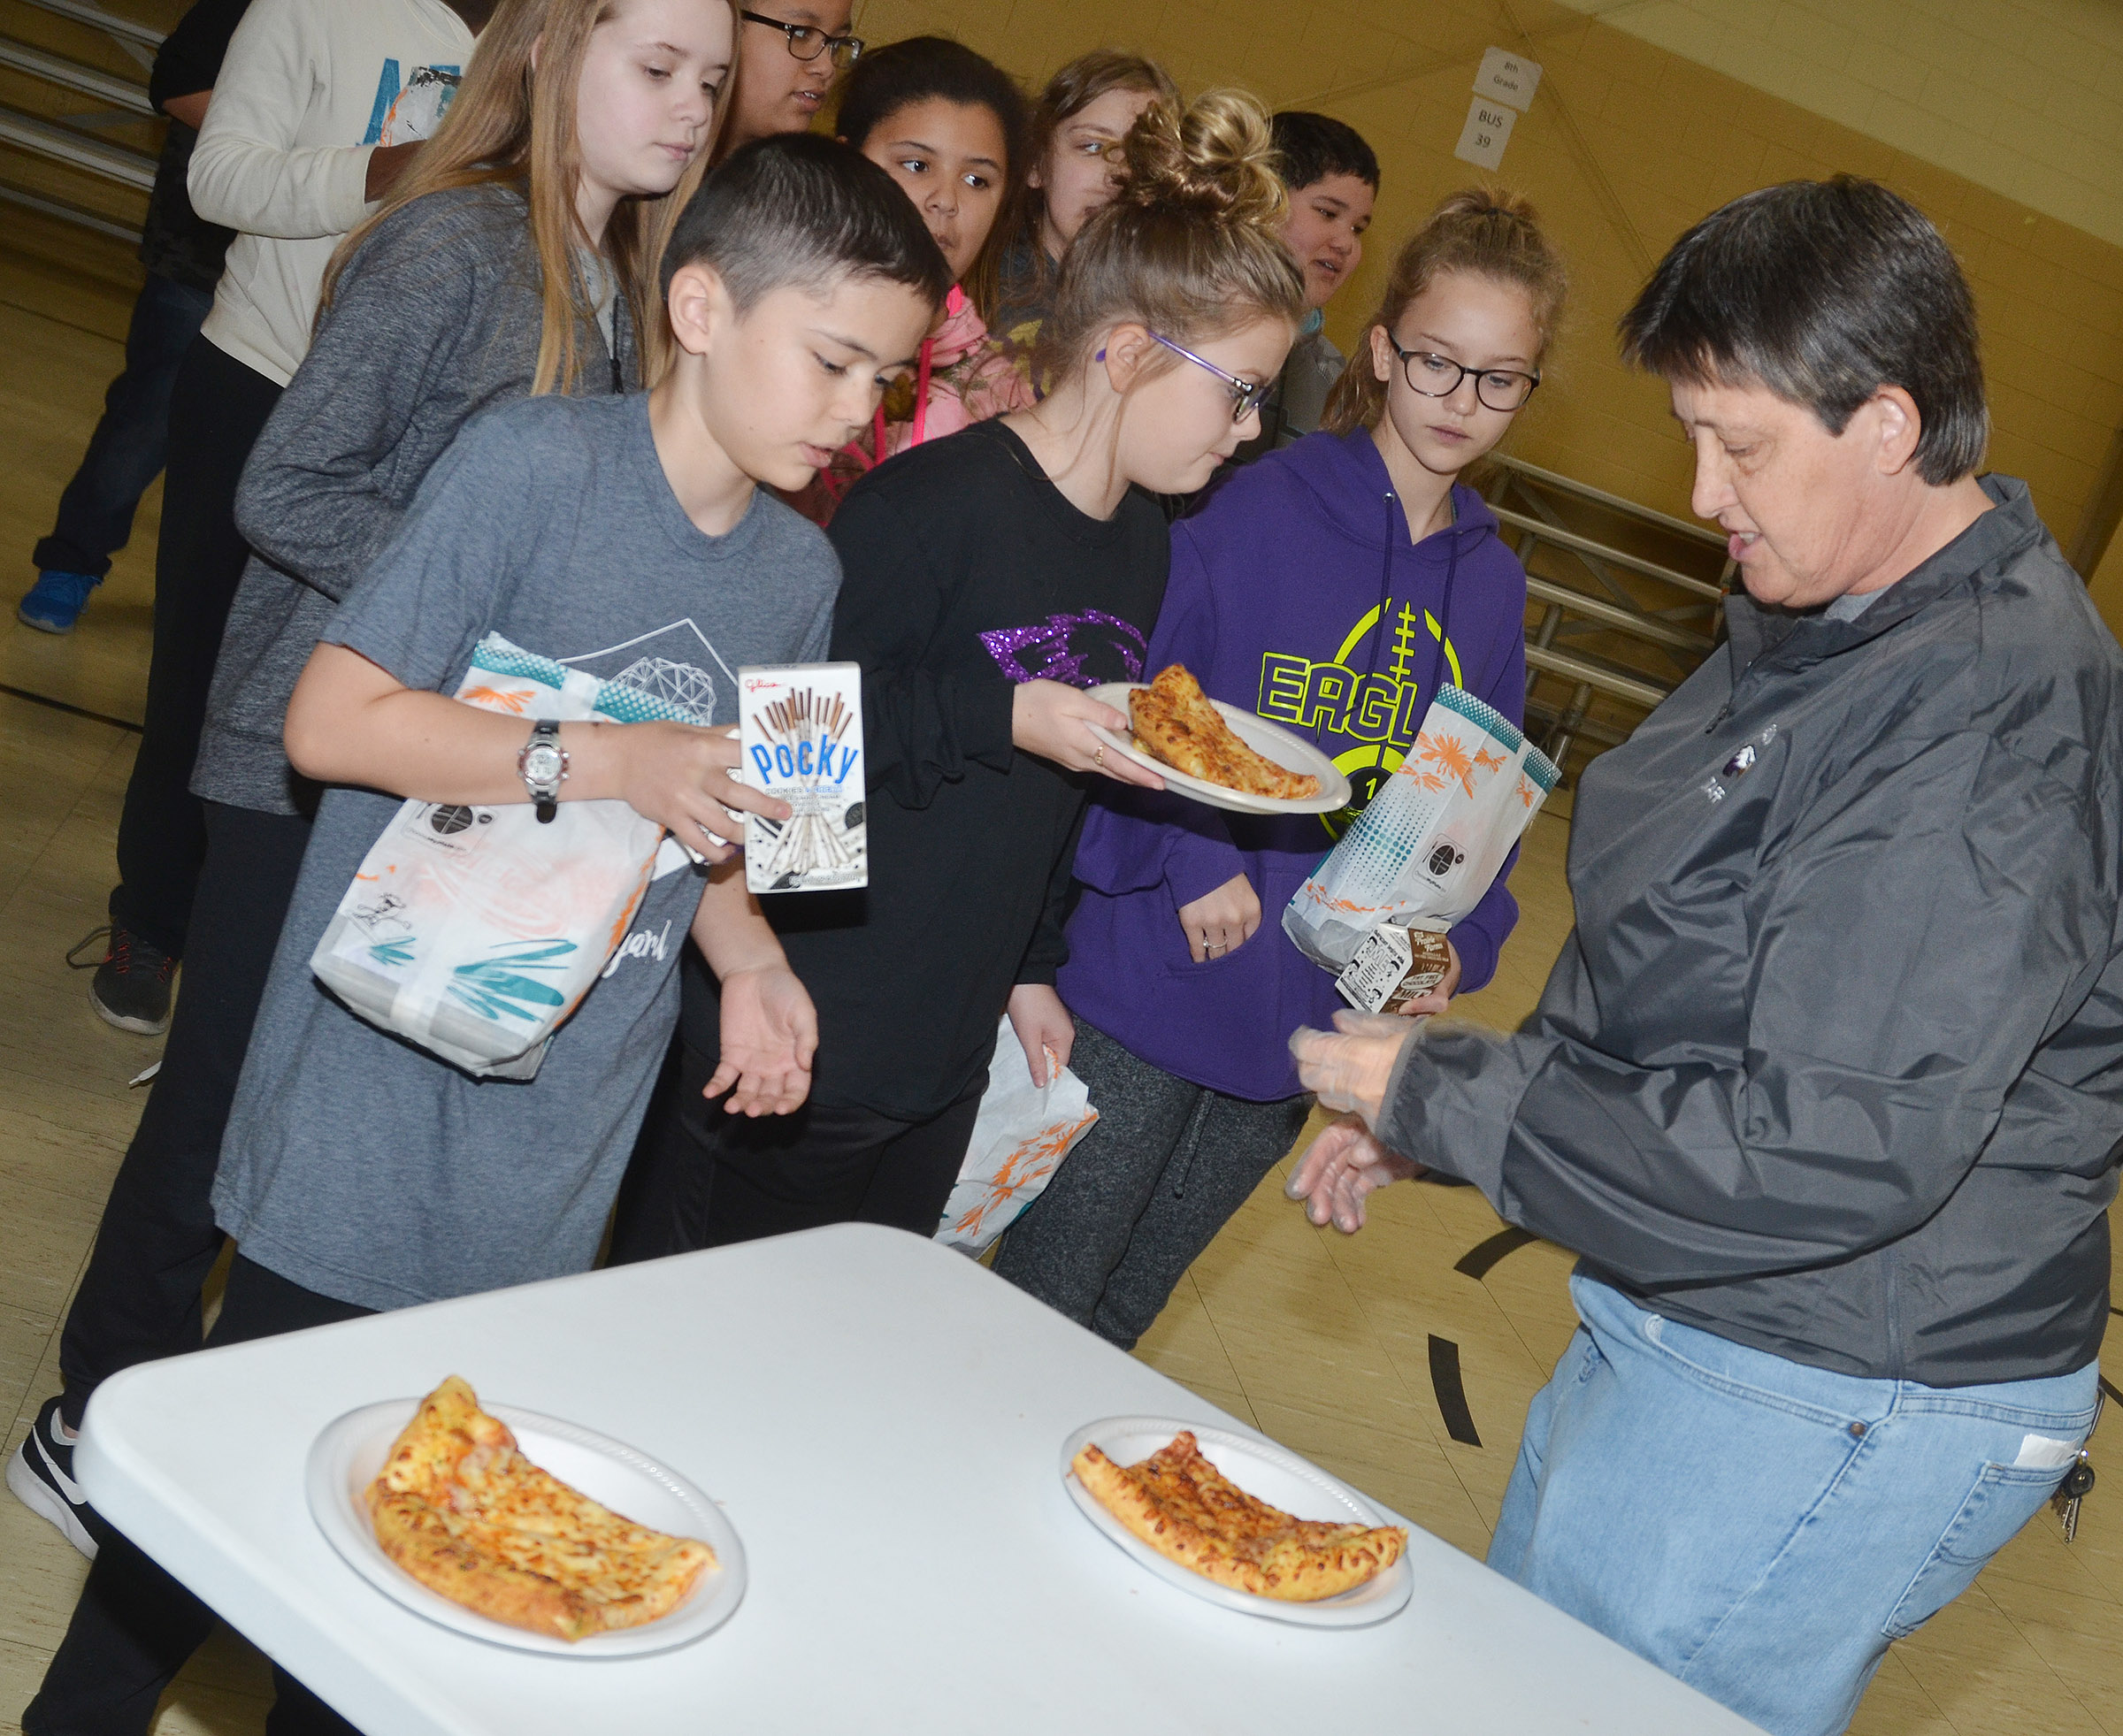 CMS exceptional child educator Katie Wilkerson serves pizza.